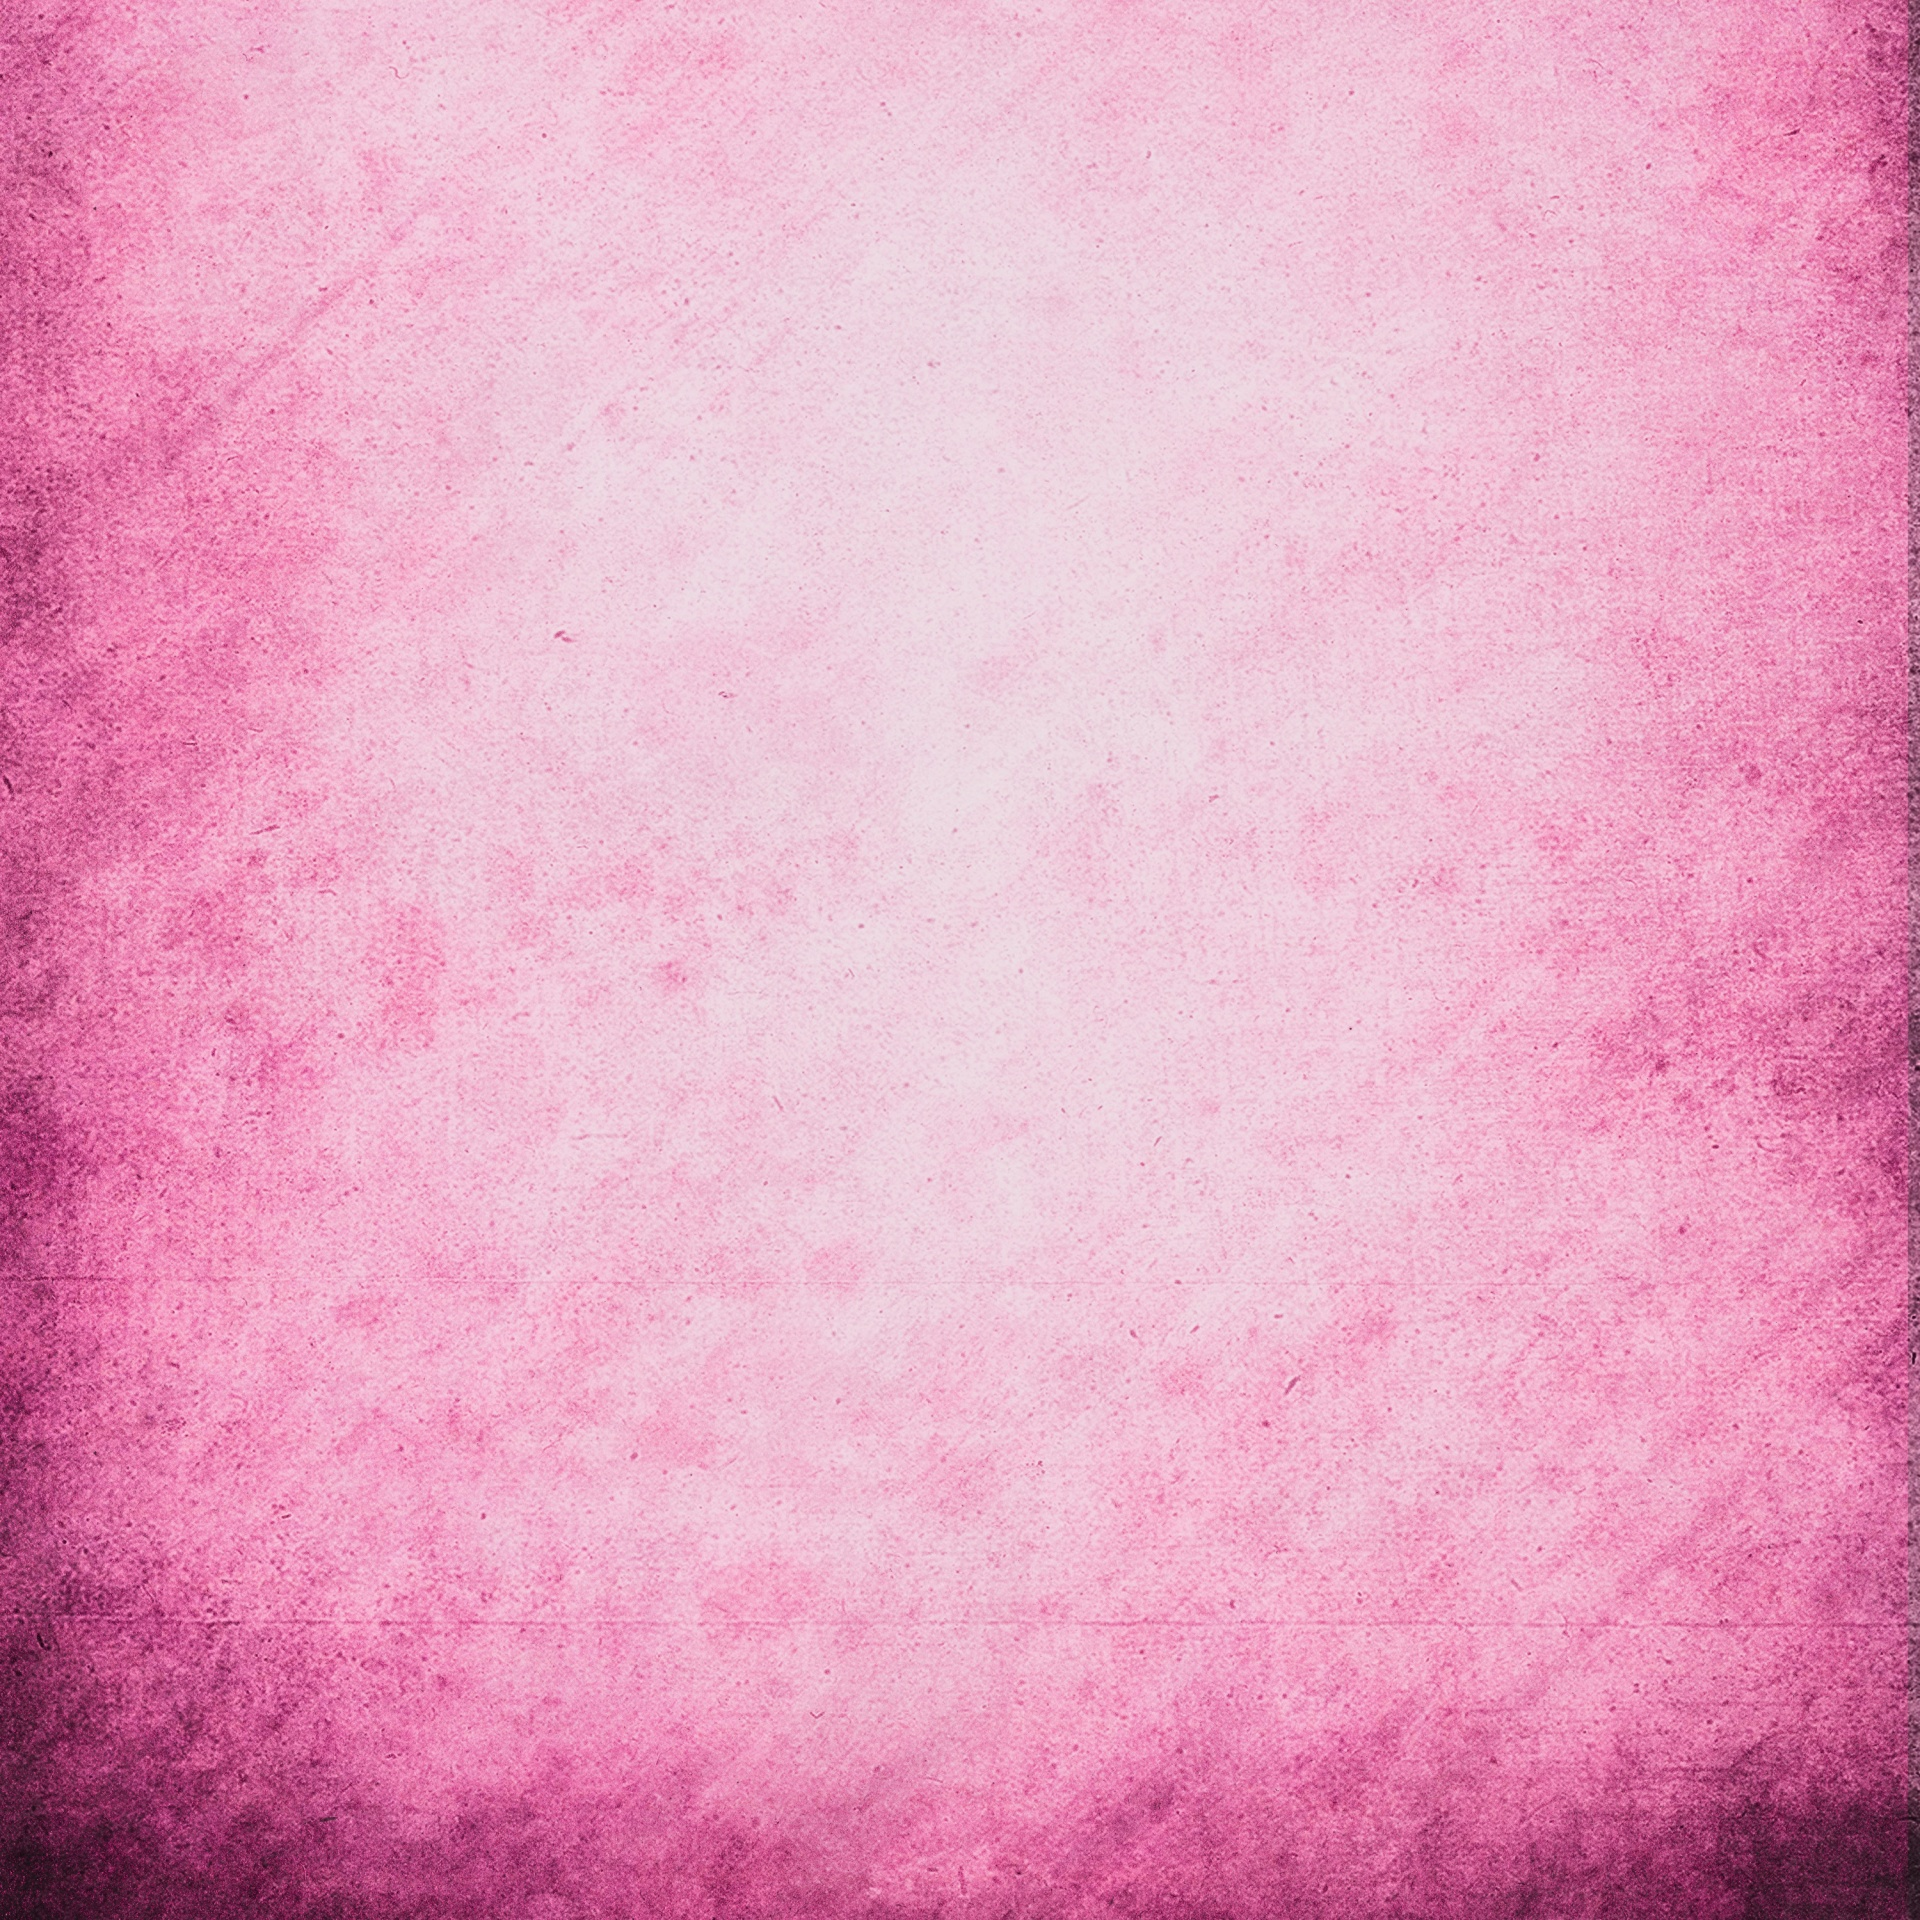 Abstract Background Pink Grunge Free Stock Photo